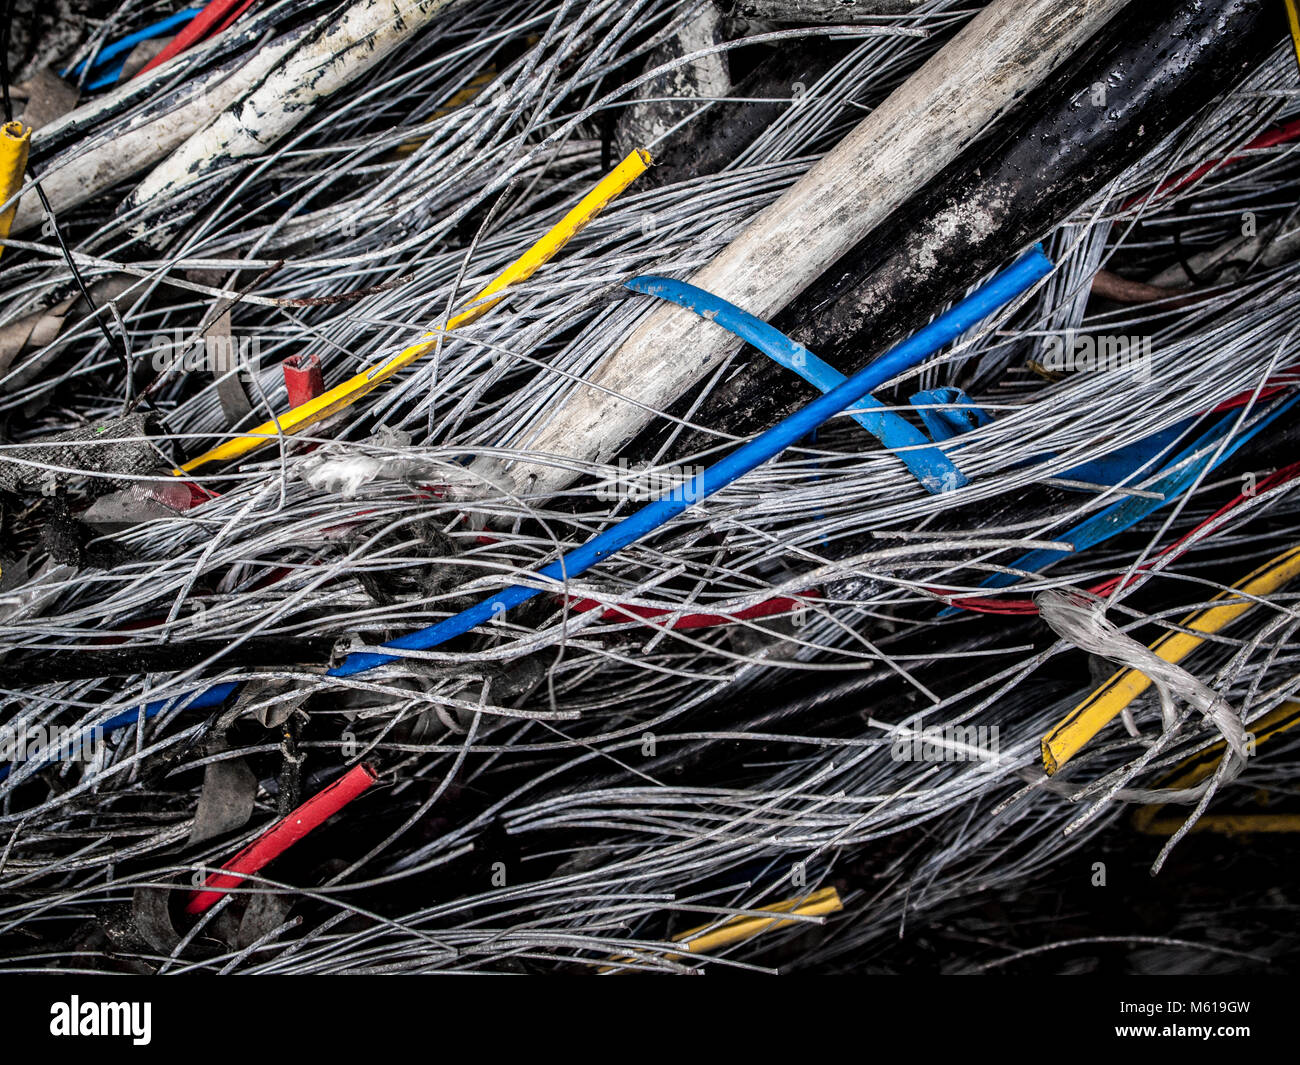 Damaged Wire Stock Photos & Damaged Wire Stock Images - Alamy